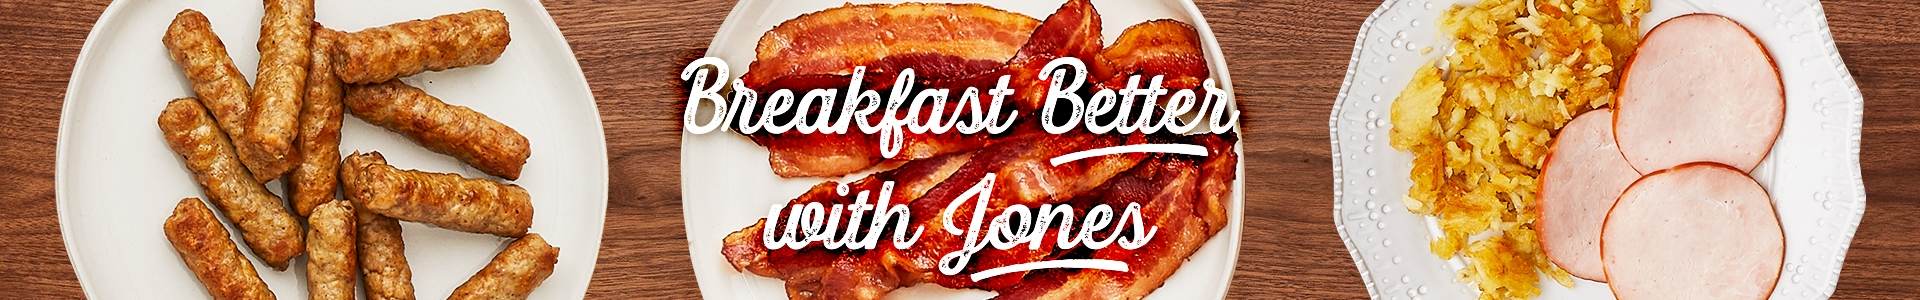 Breakfast Better With Jones